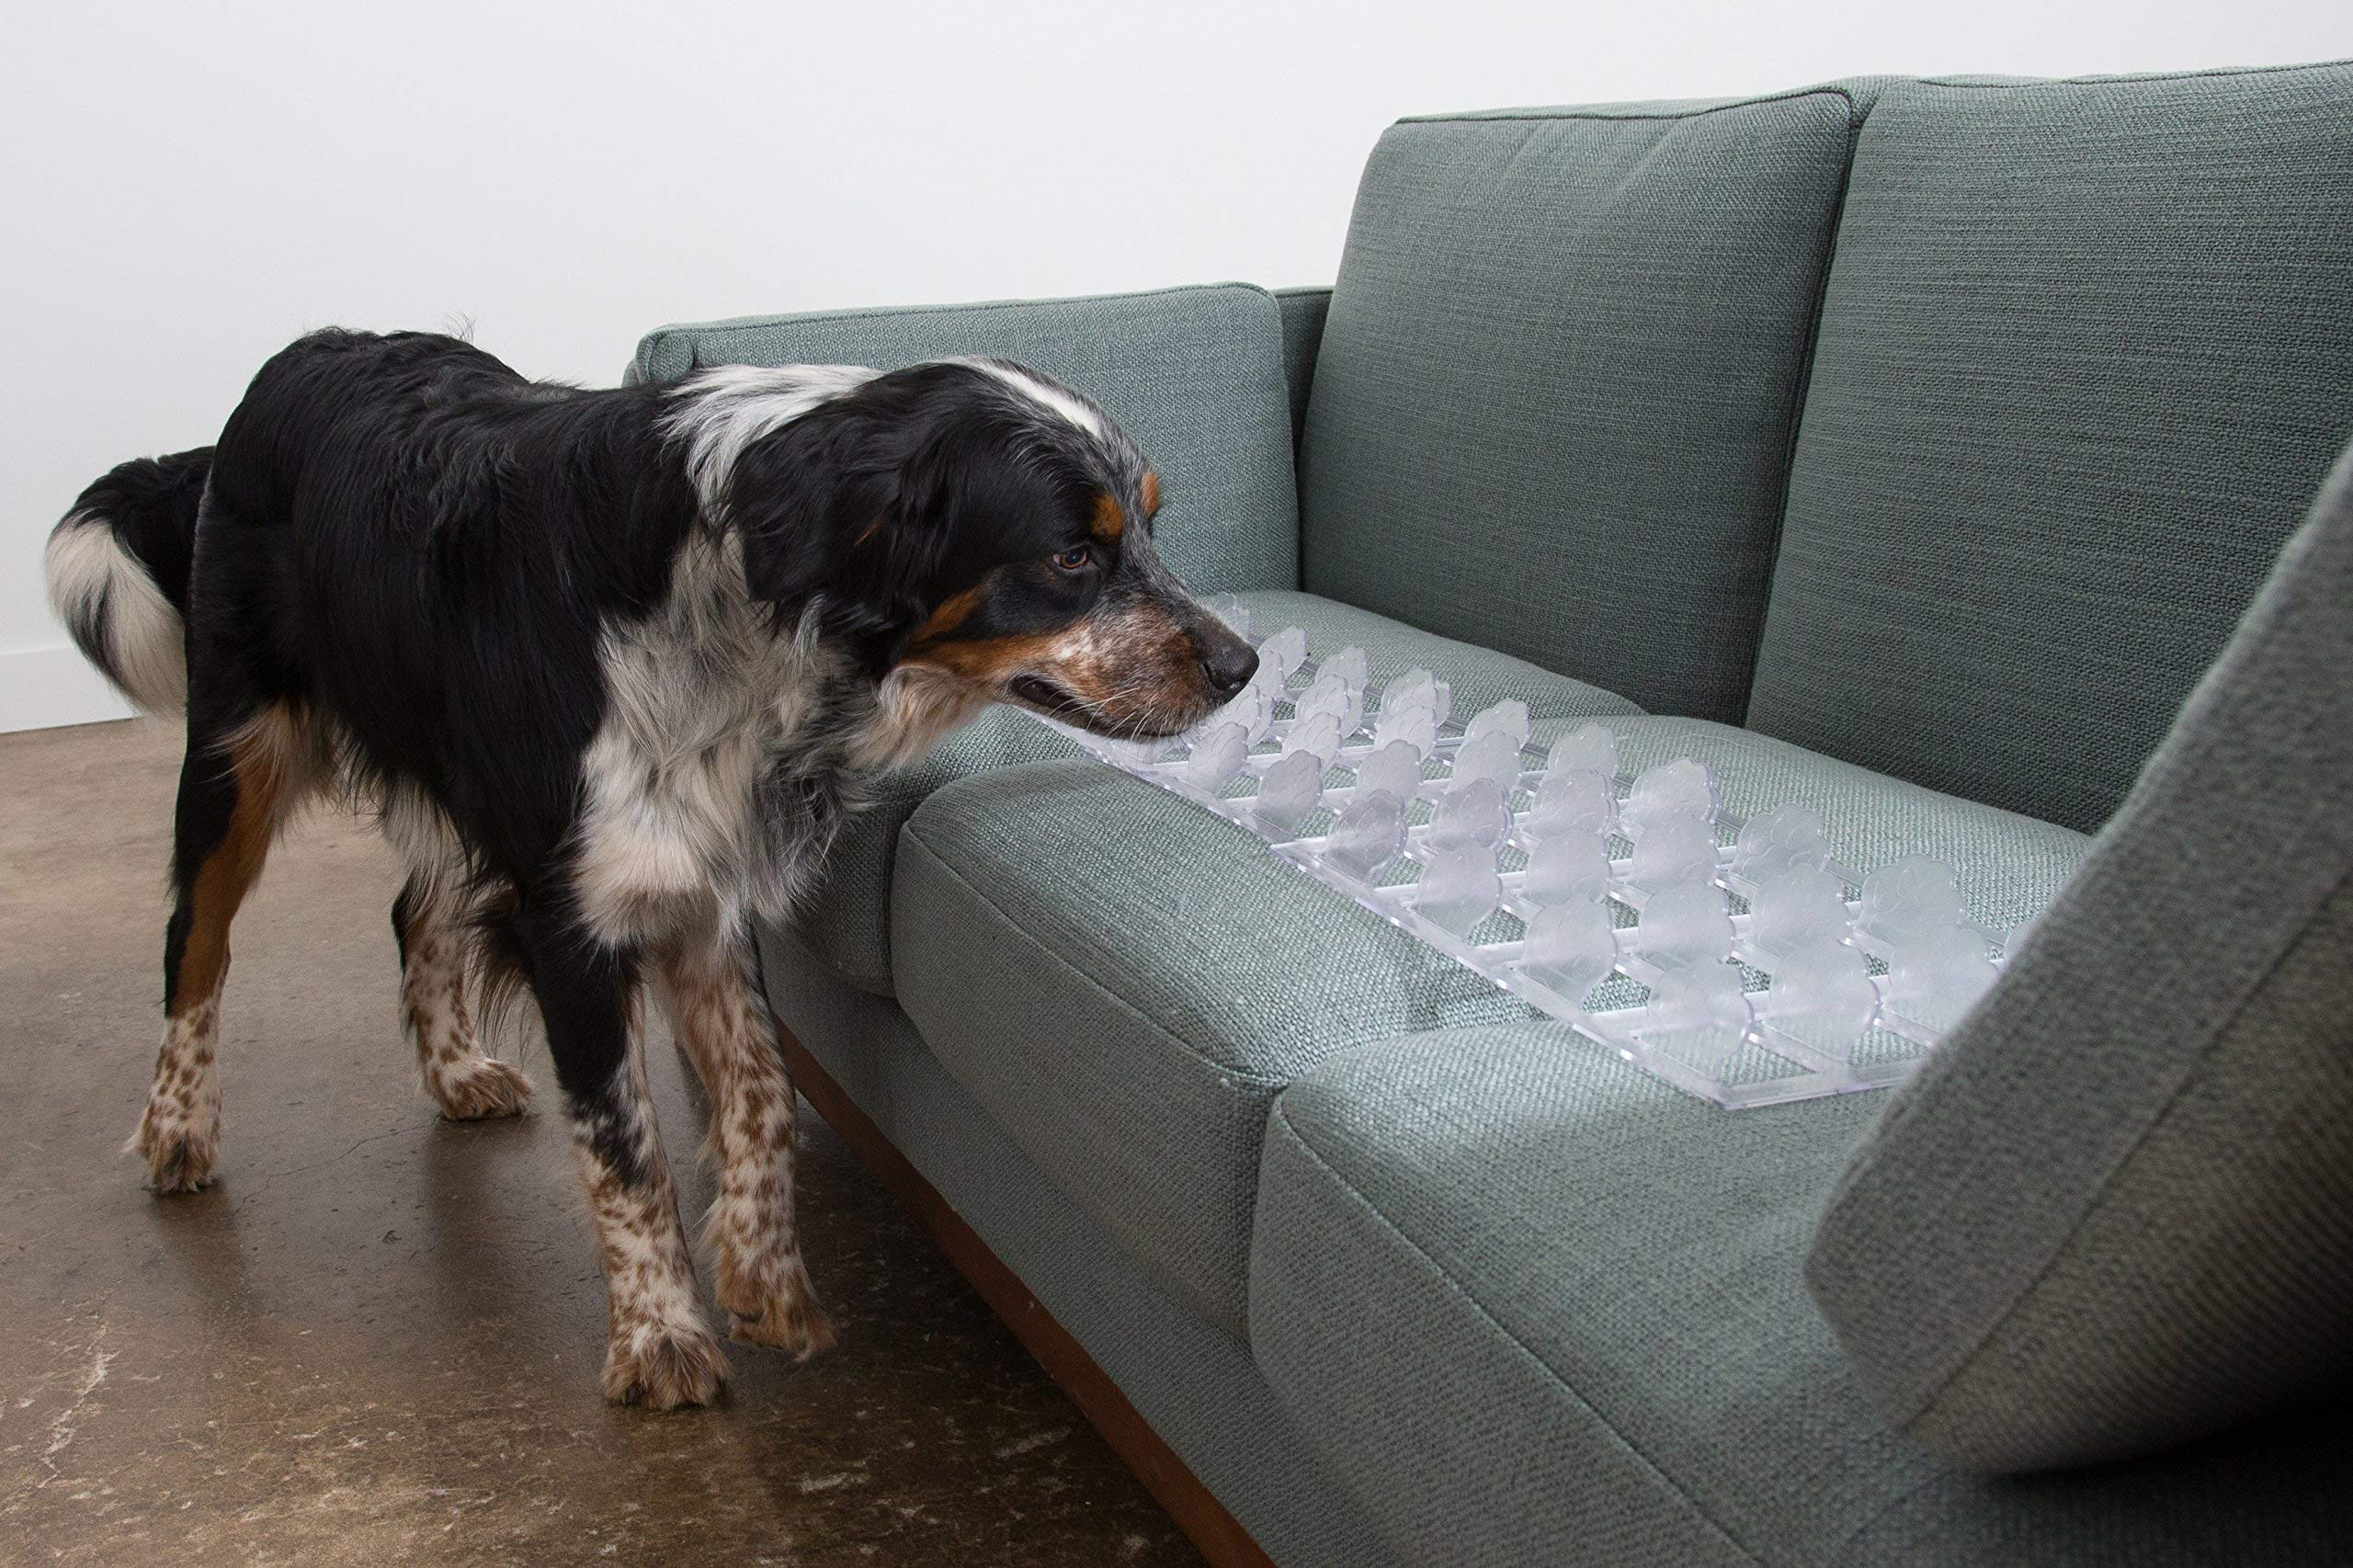 Couch Guard & Furniture Protector - Keep Dogs & Pets Safely off Furniture (Quantity 4 /CLEAR) Made in USA! by PeachtreePet.com Made in USA